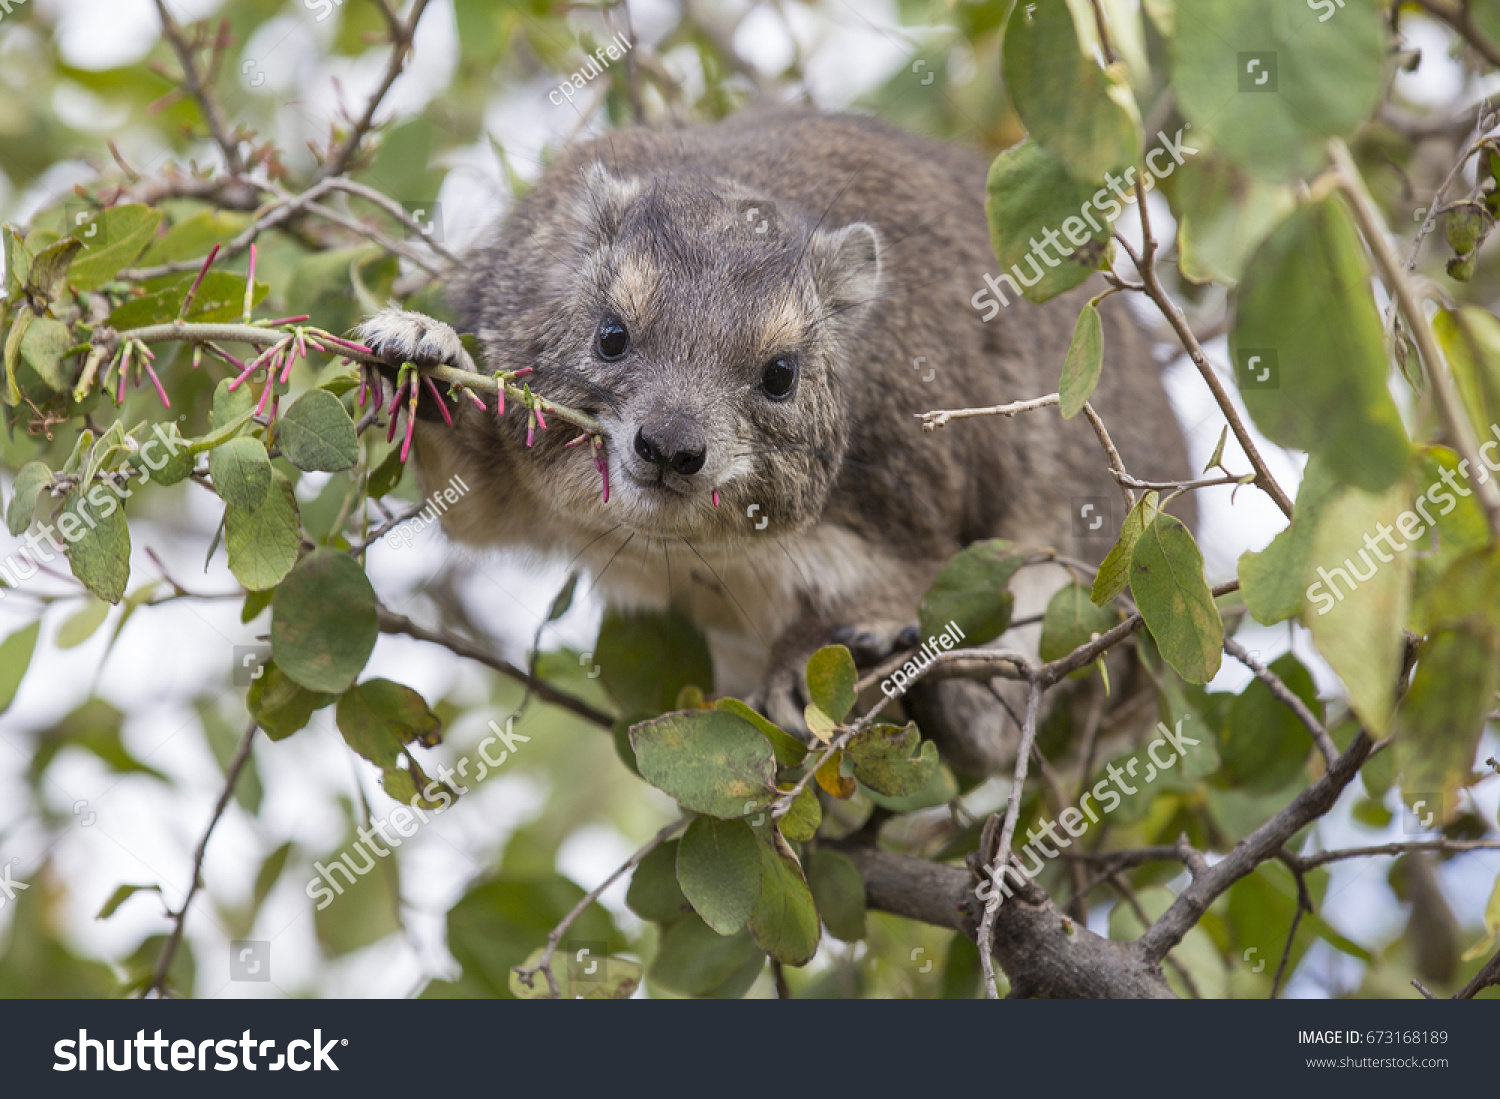 stock-photo-a-cute-tree-hyrax-eating-in-